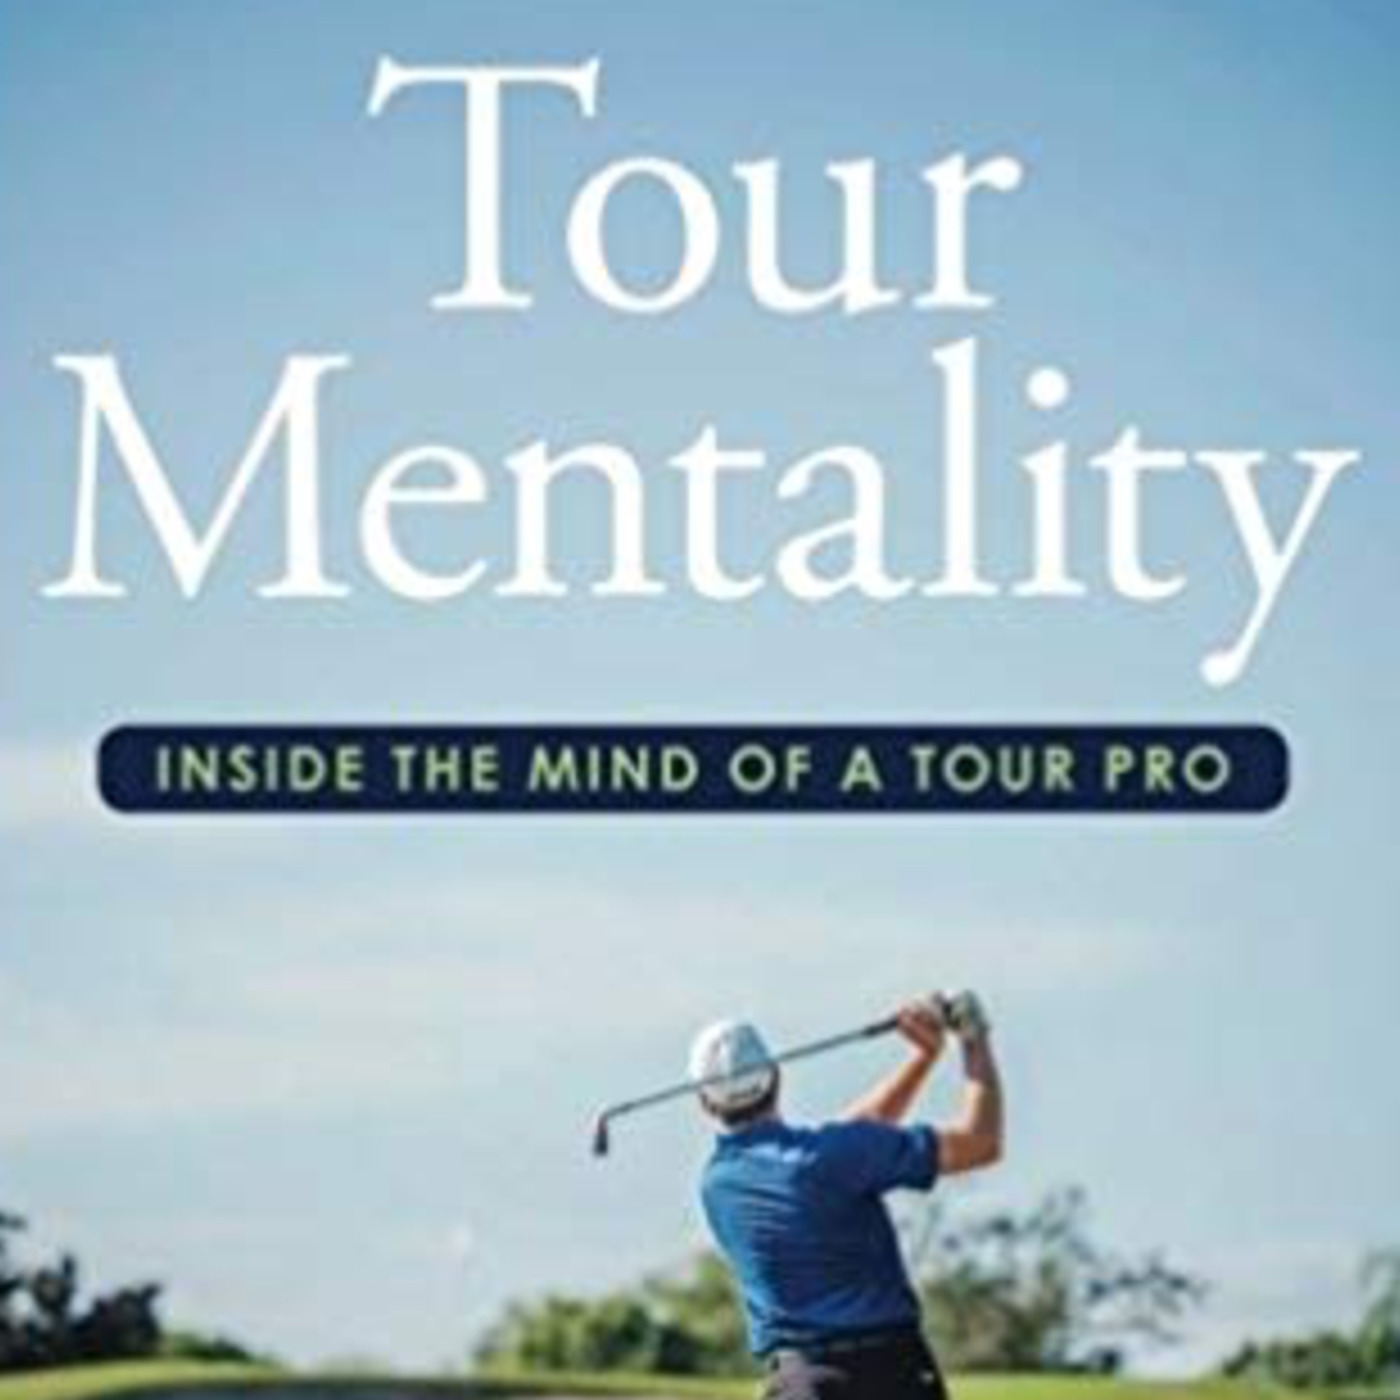 Nick O'Hern's Tour Mentality 1: Go to the movies. Execute. Repeat